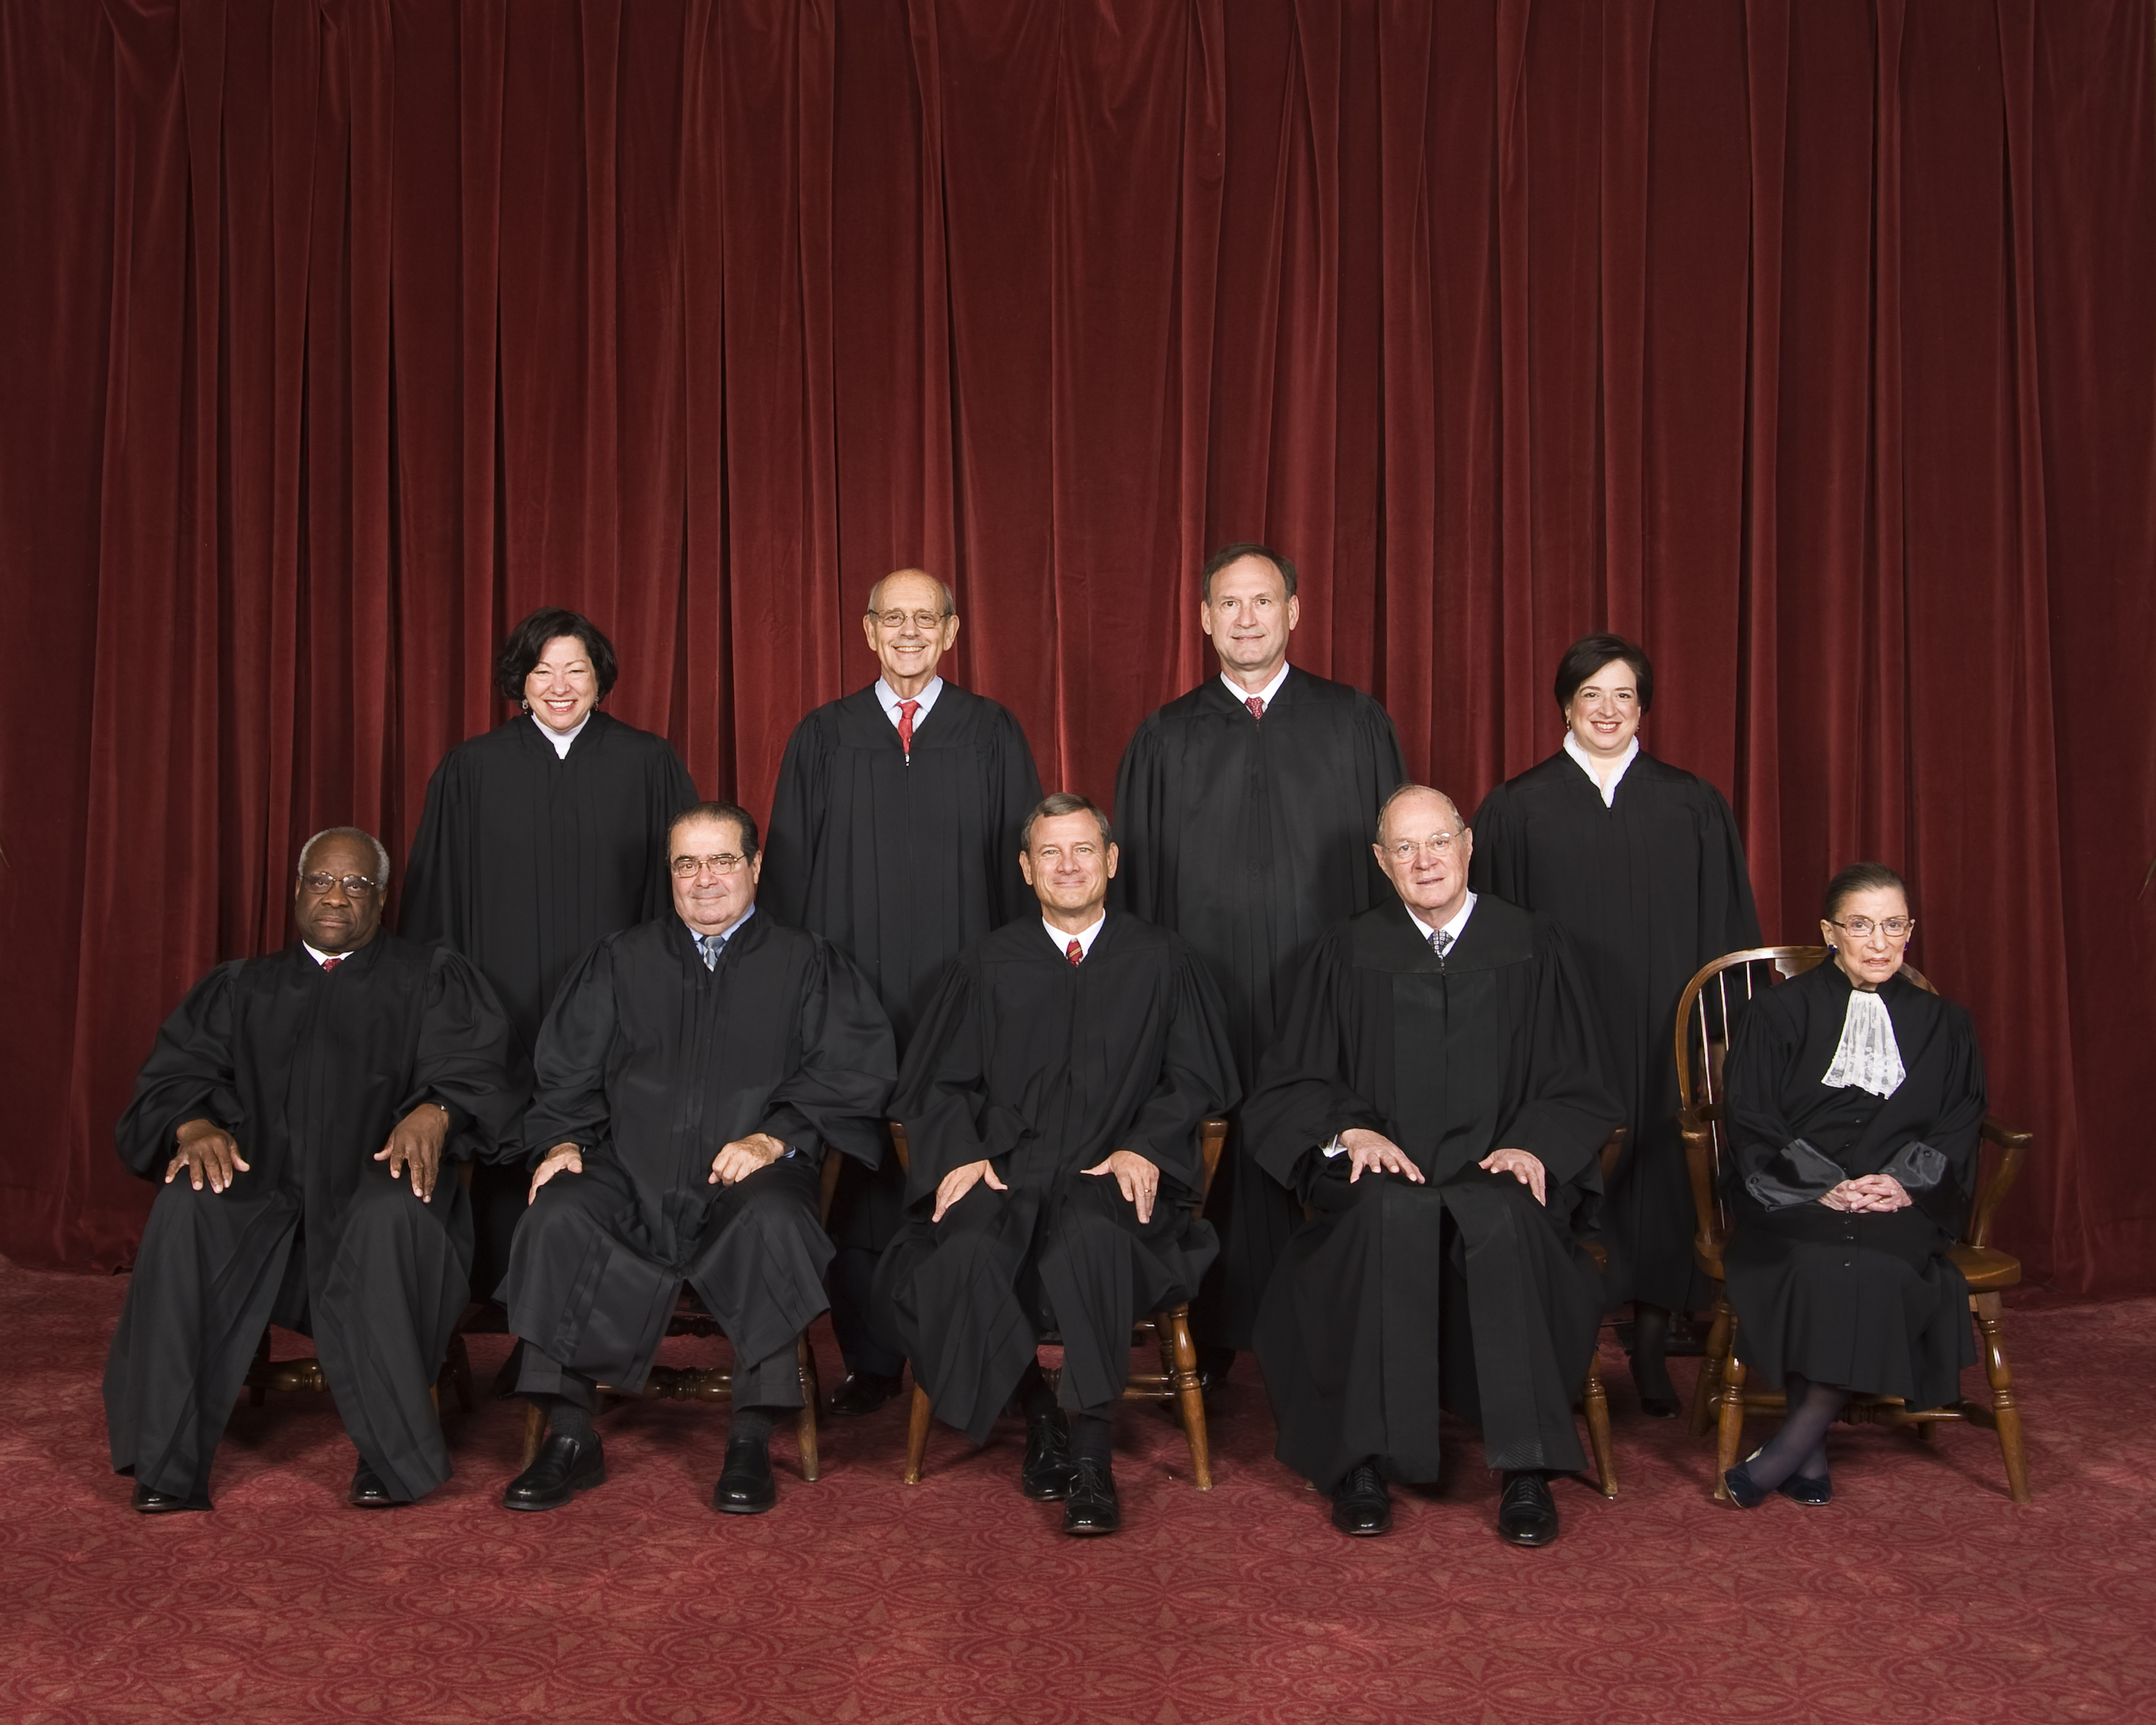 Is there something behind why Judge Roberts sided with the liberals on Obamacare than meets the eye